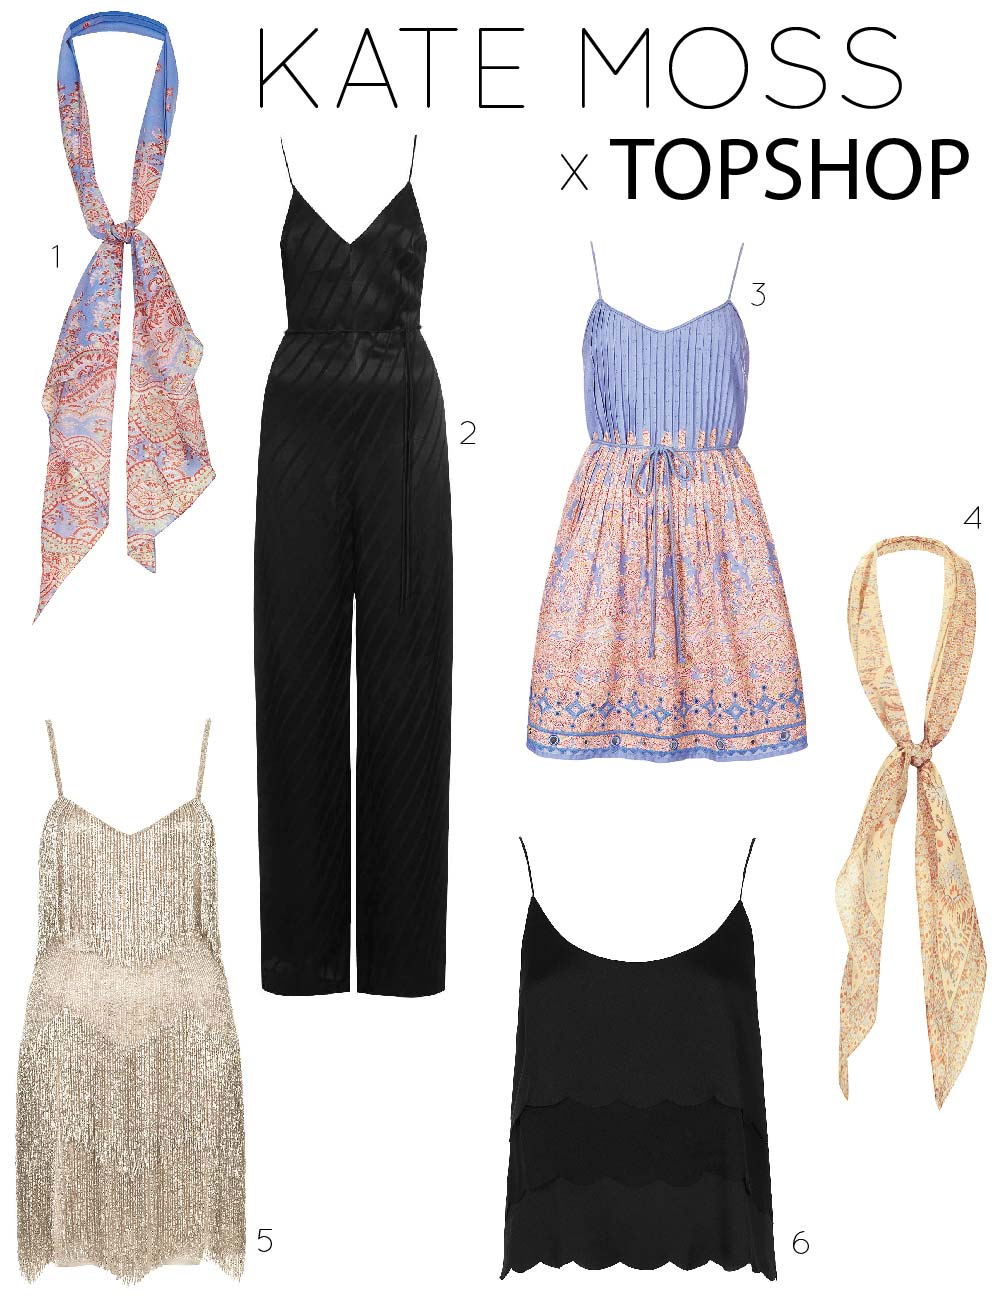 Topshop clothing store